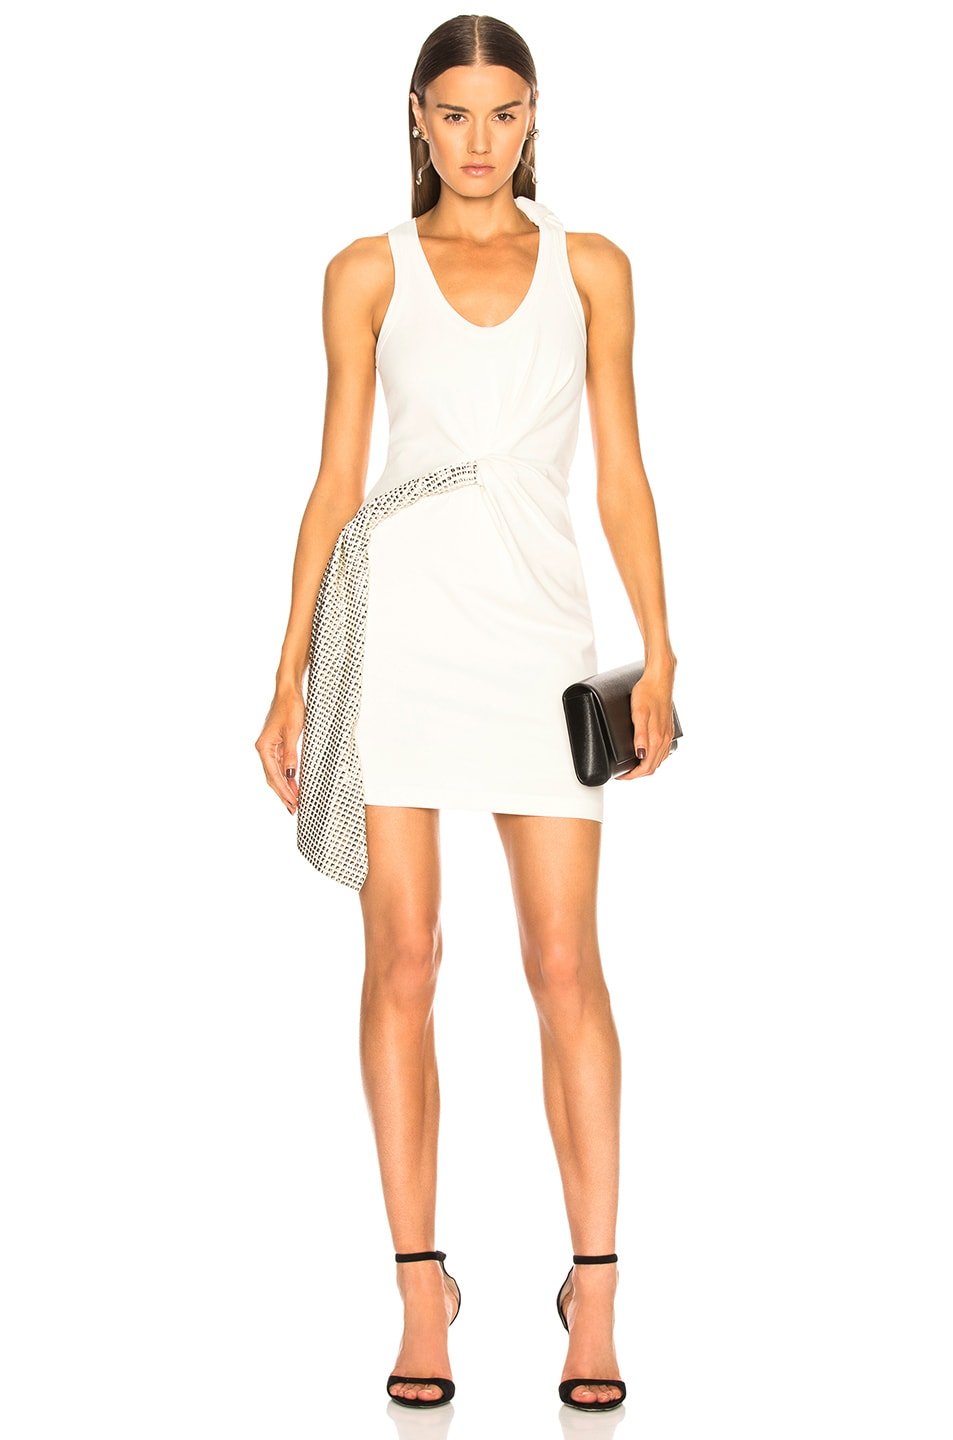 Alexander Wang Deconstructed Tank Dress in White